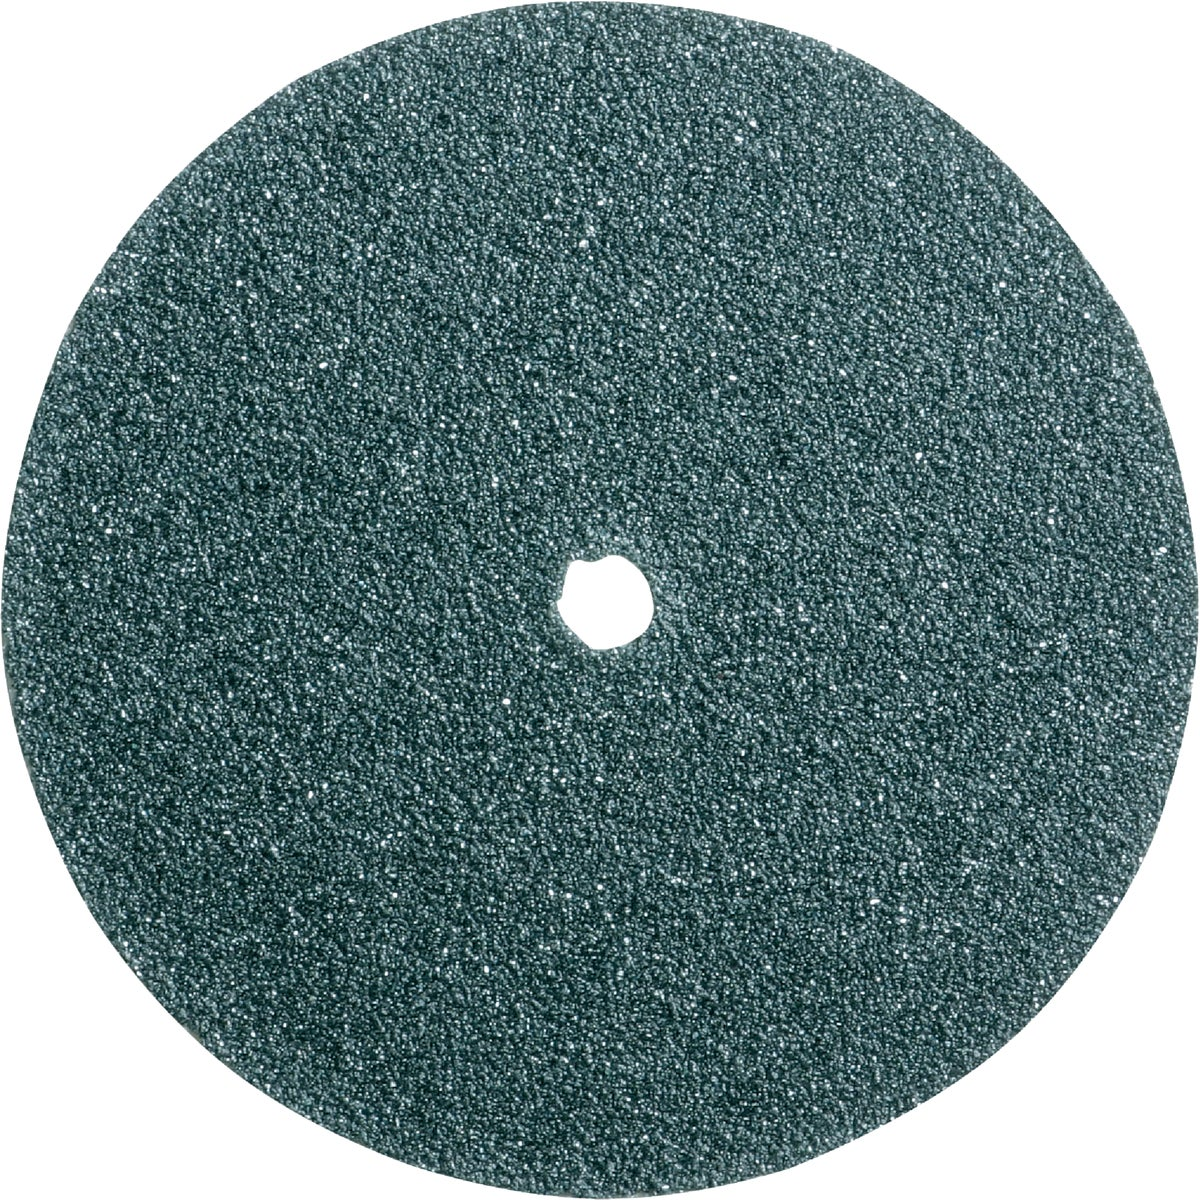 FINE SANDING DISC - 413 by Dremel Mfg Co